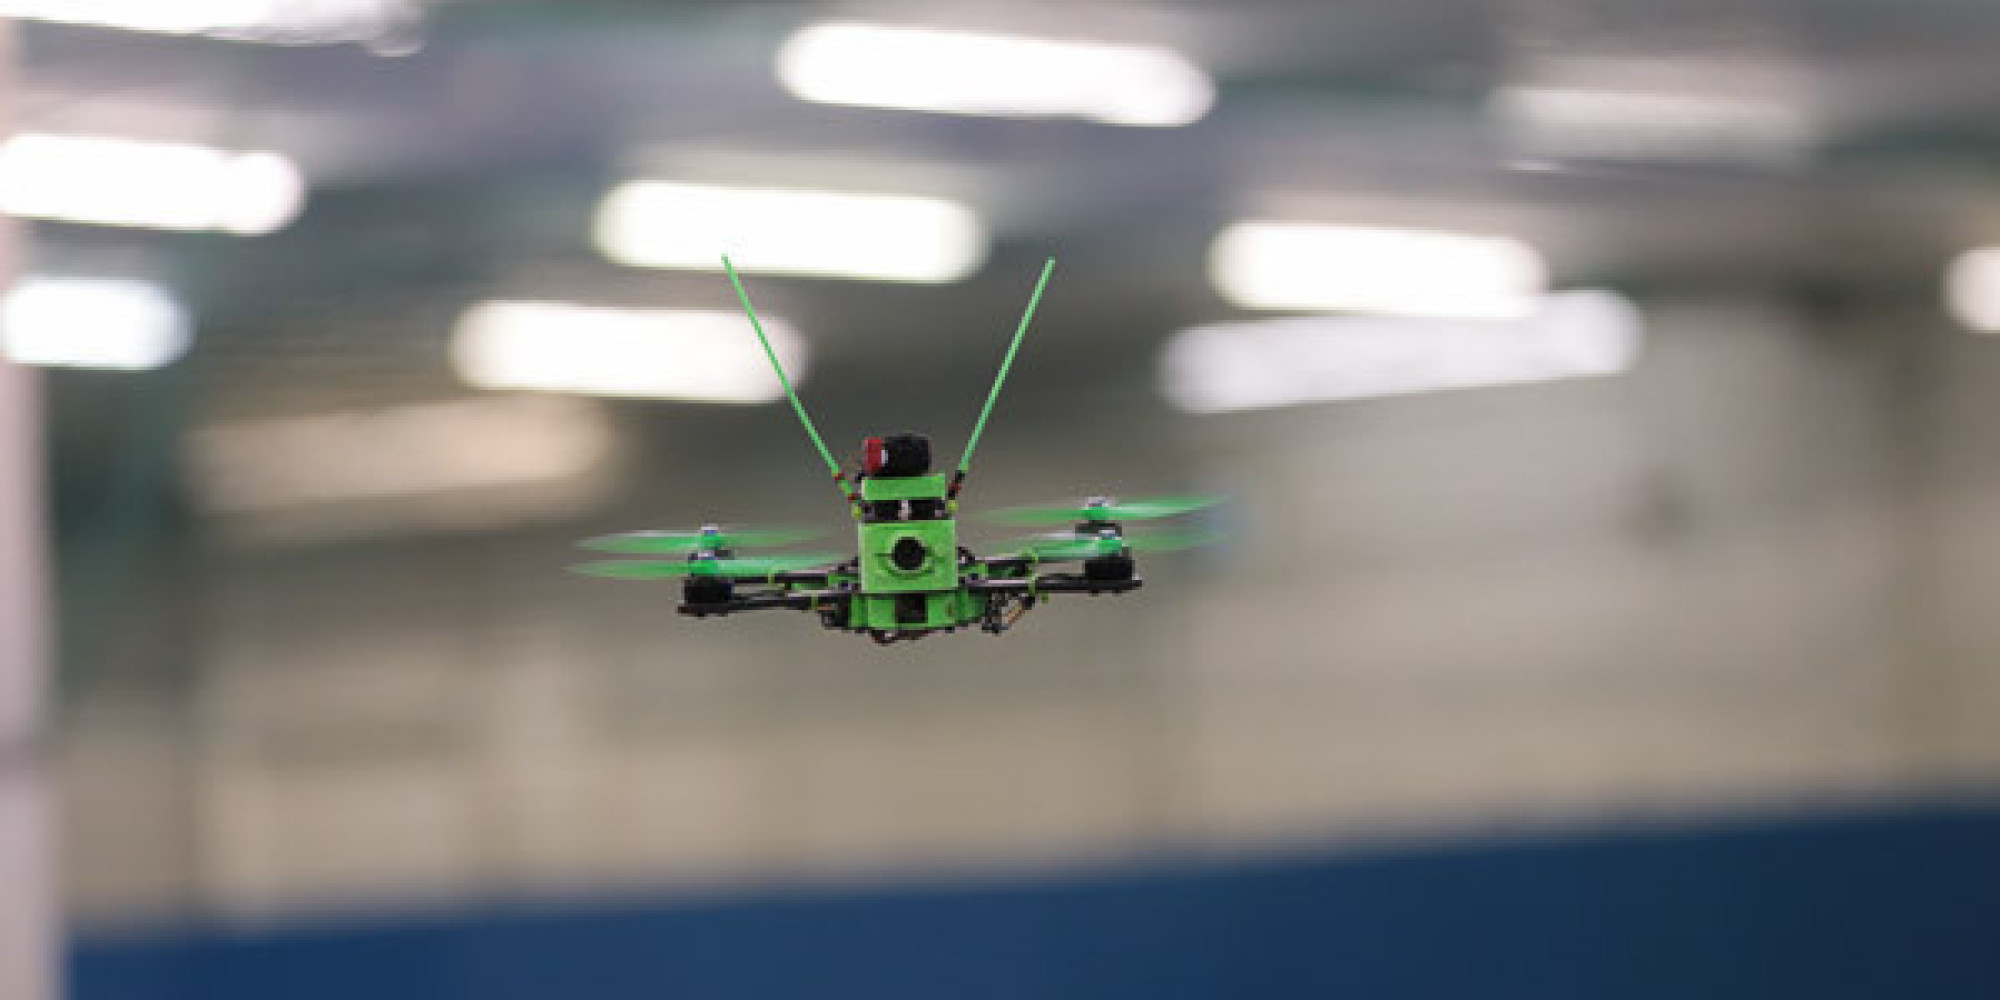 London Hosts Its First Indoor 'Fast And Furious-Style' FPV Drone ...